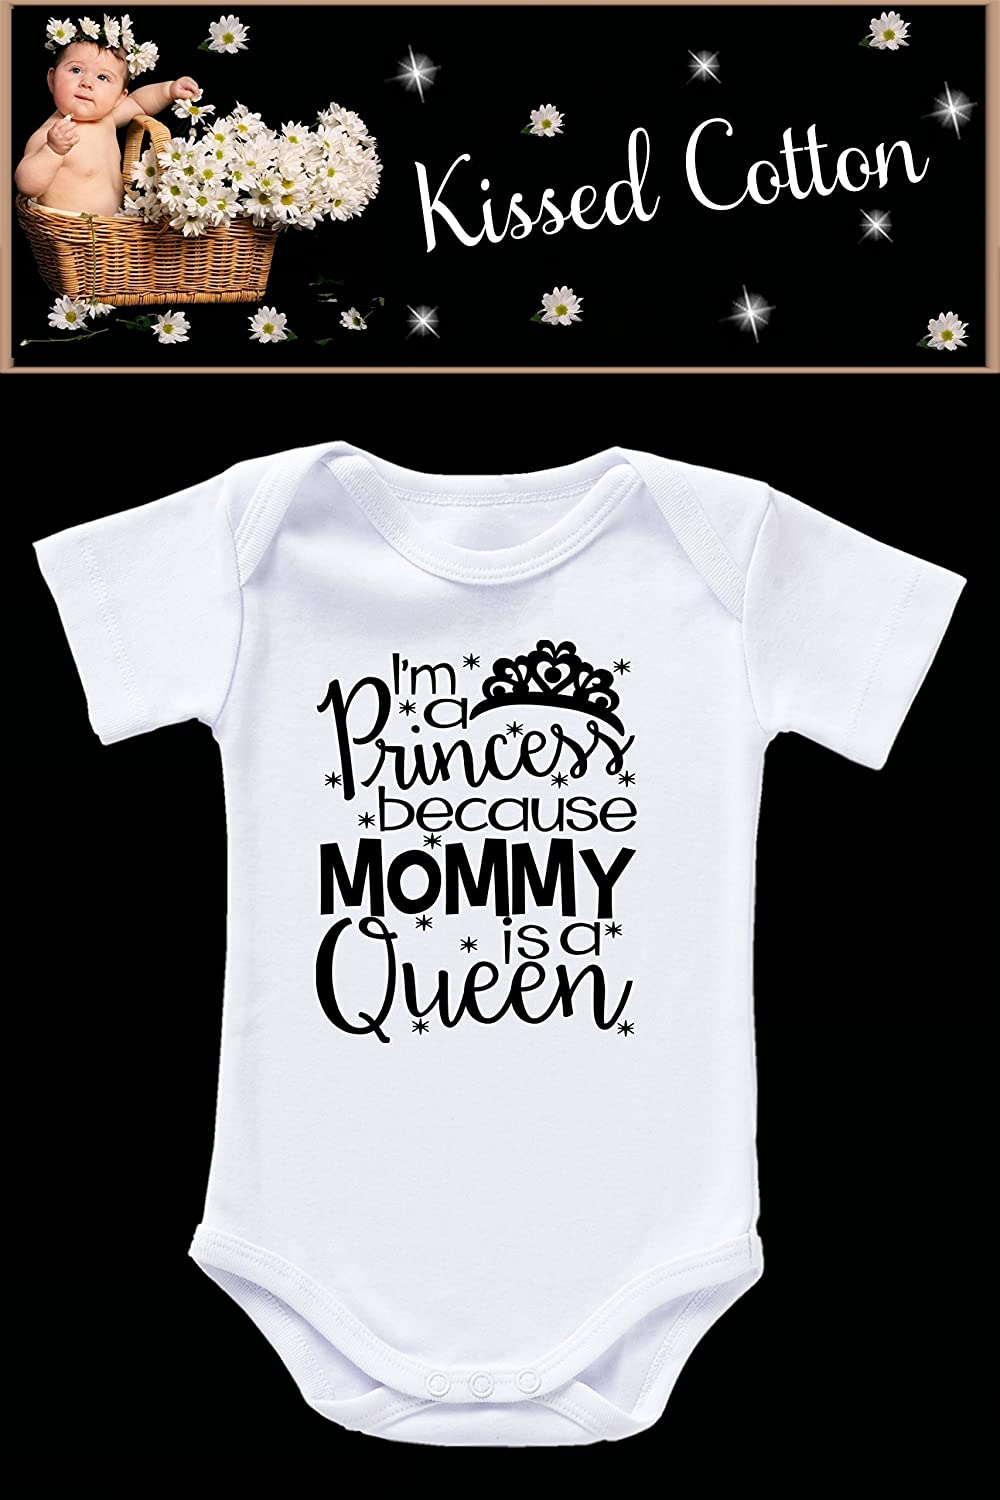 Im a Princess Because Mommy is the Queen (KC1)